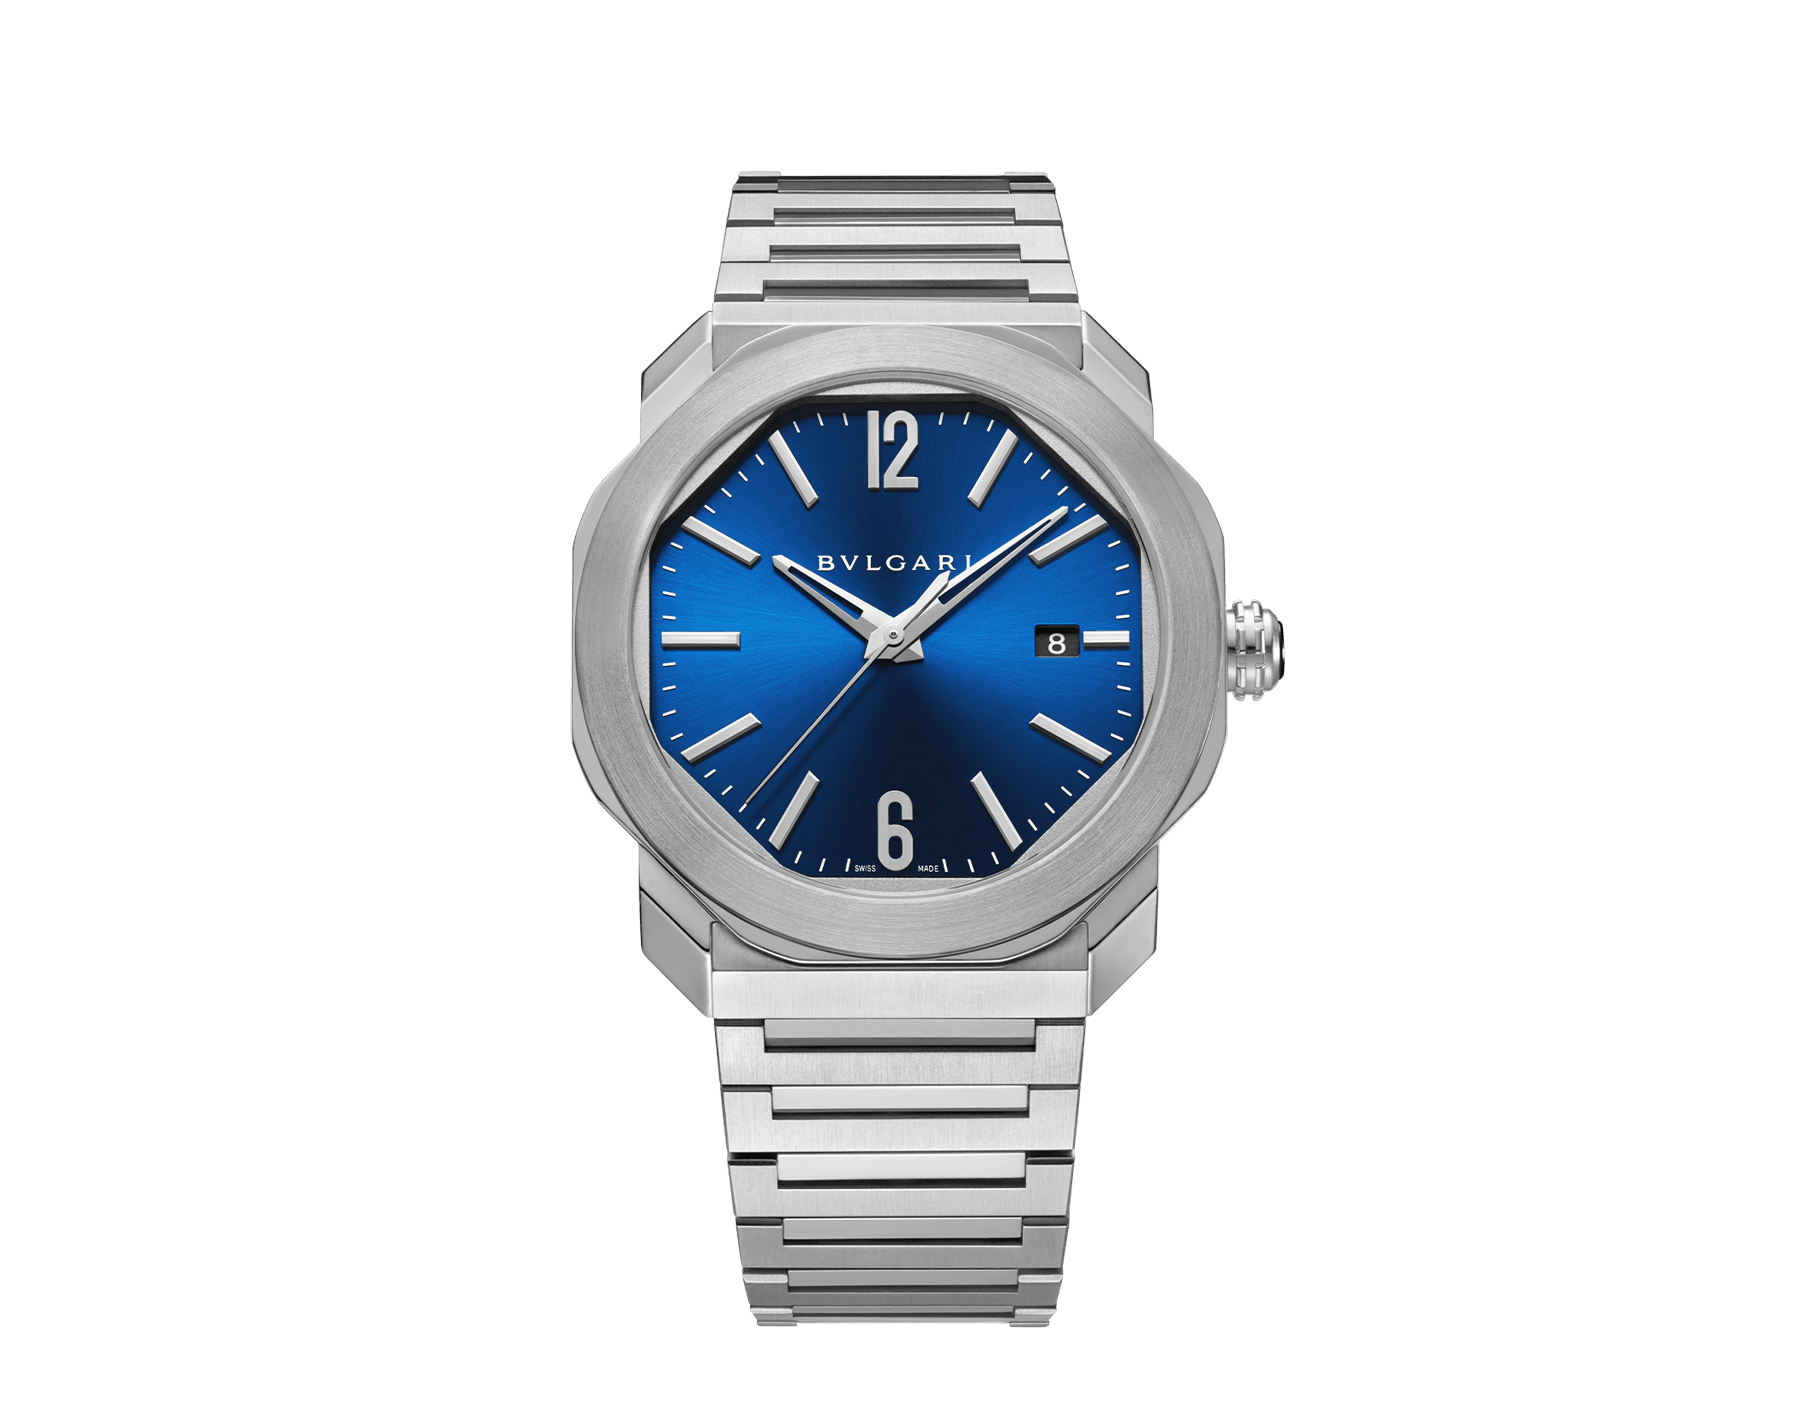 Octo Roma watch with mechanical manufacture movement, automatic winding, stainless steel case and bracelet, blue dial. 102856 image 1